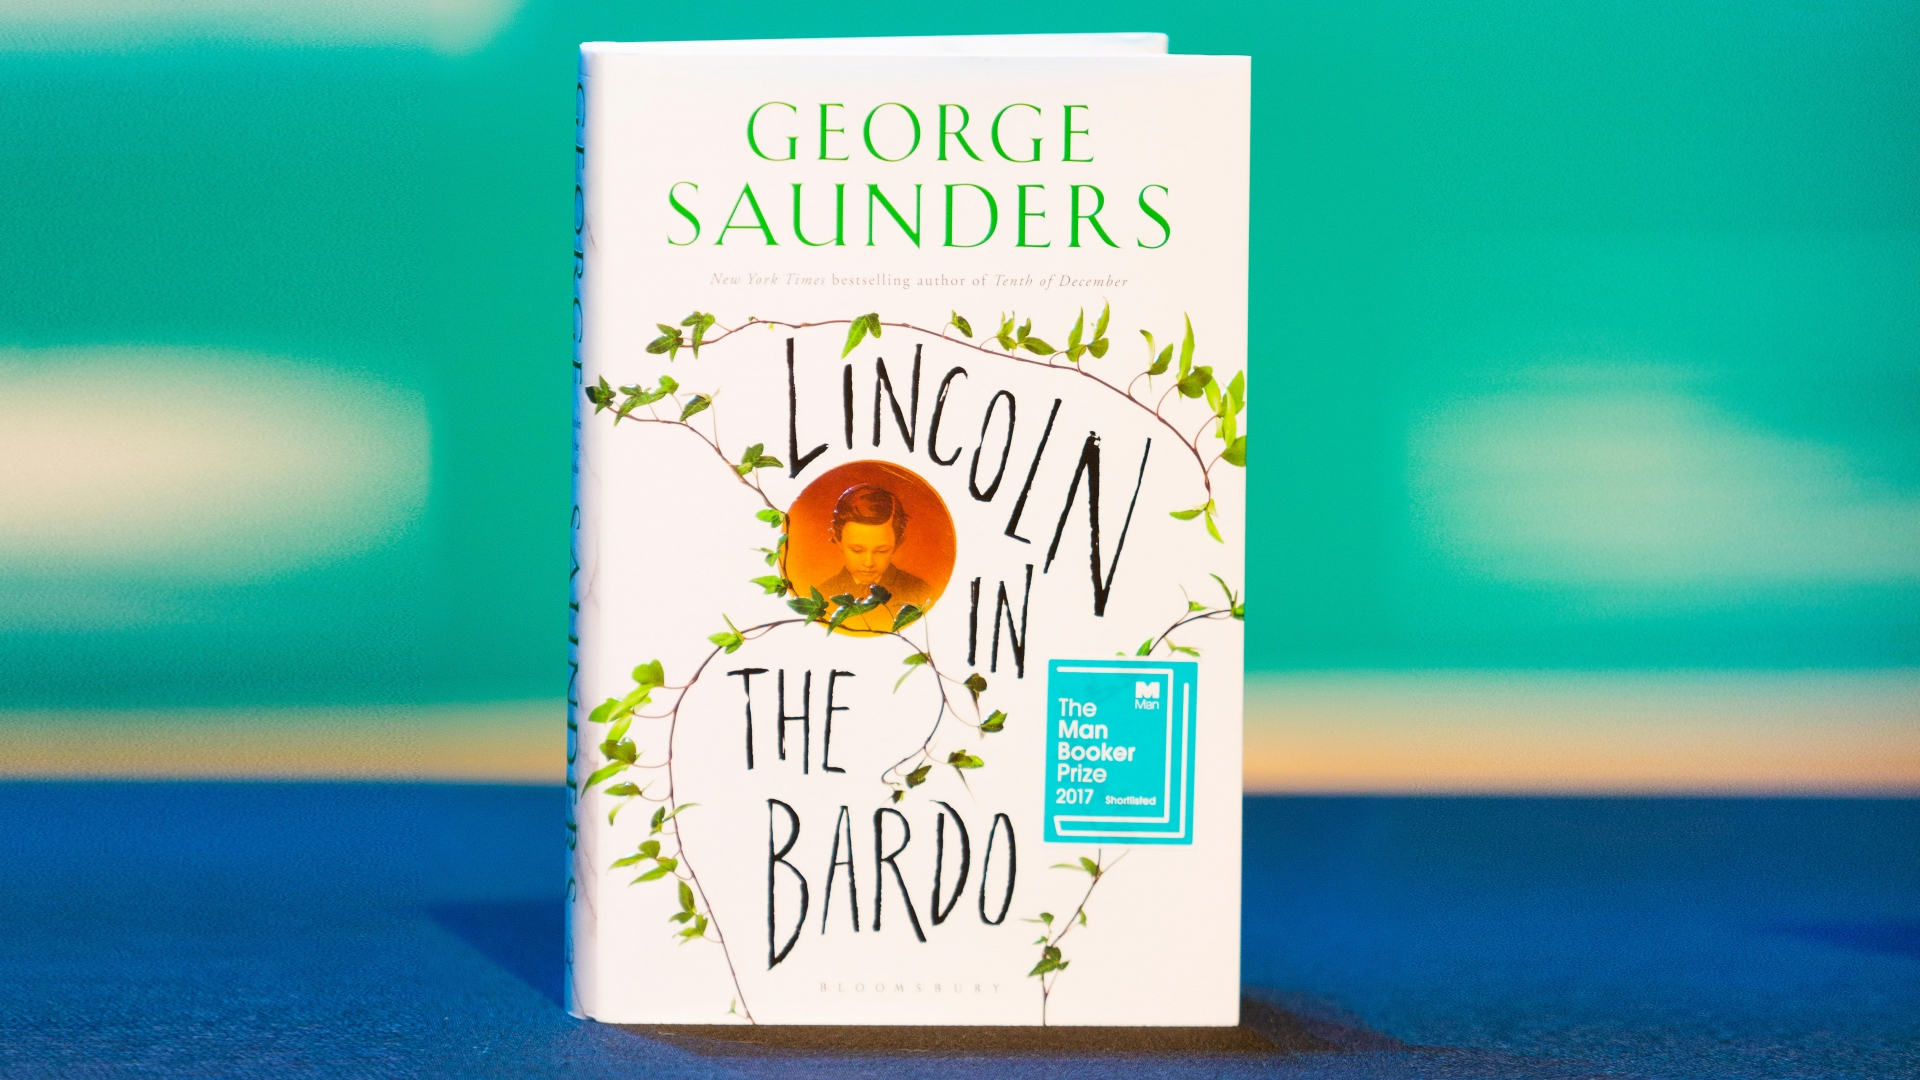 George Saunders' novel Lincoln in the Bardo, shortlisted for the 2017 Man Booker Prize for Fiction. (Credit: Dave Stevenson/Alamy Live News)